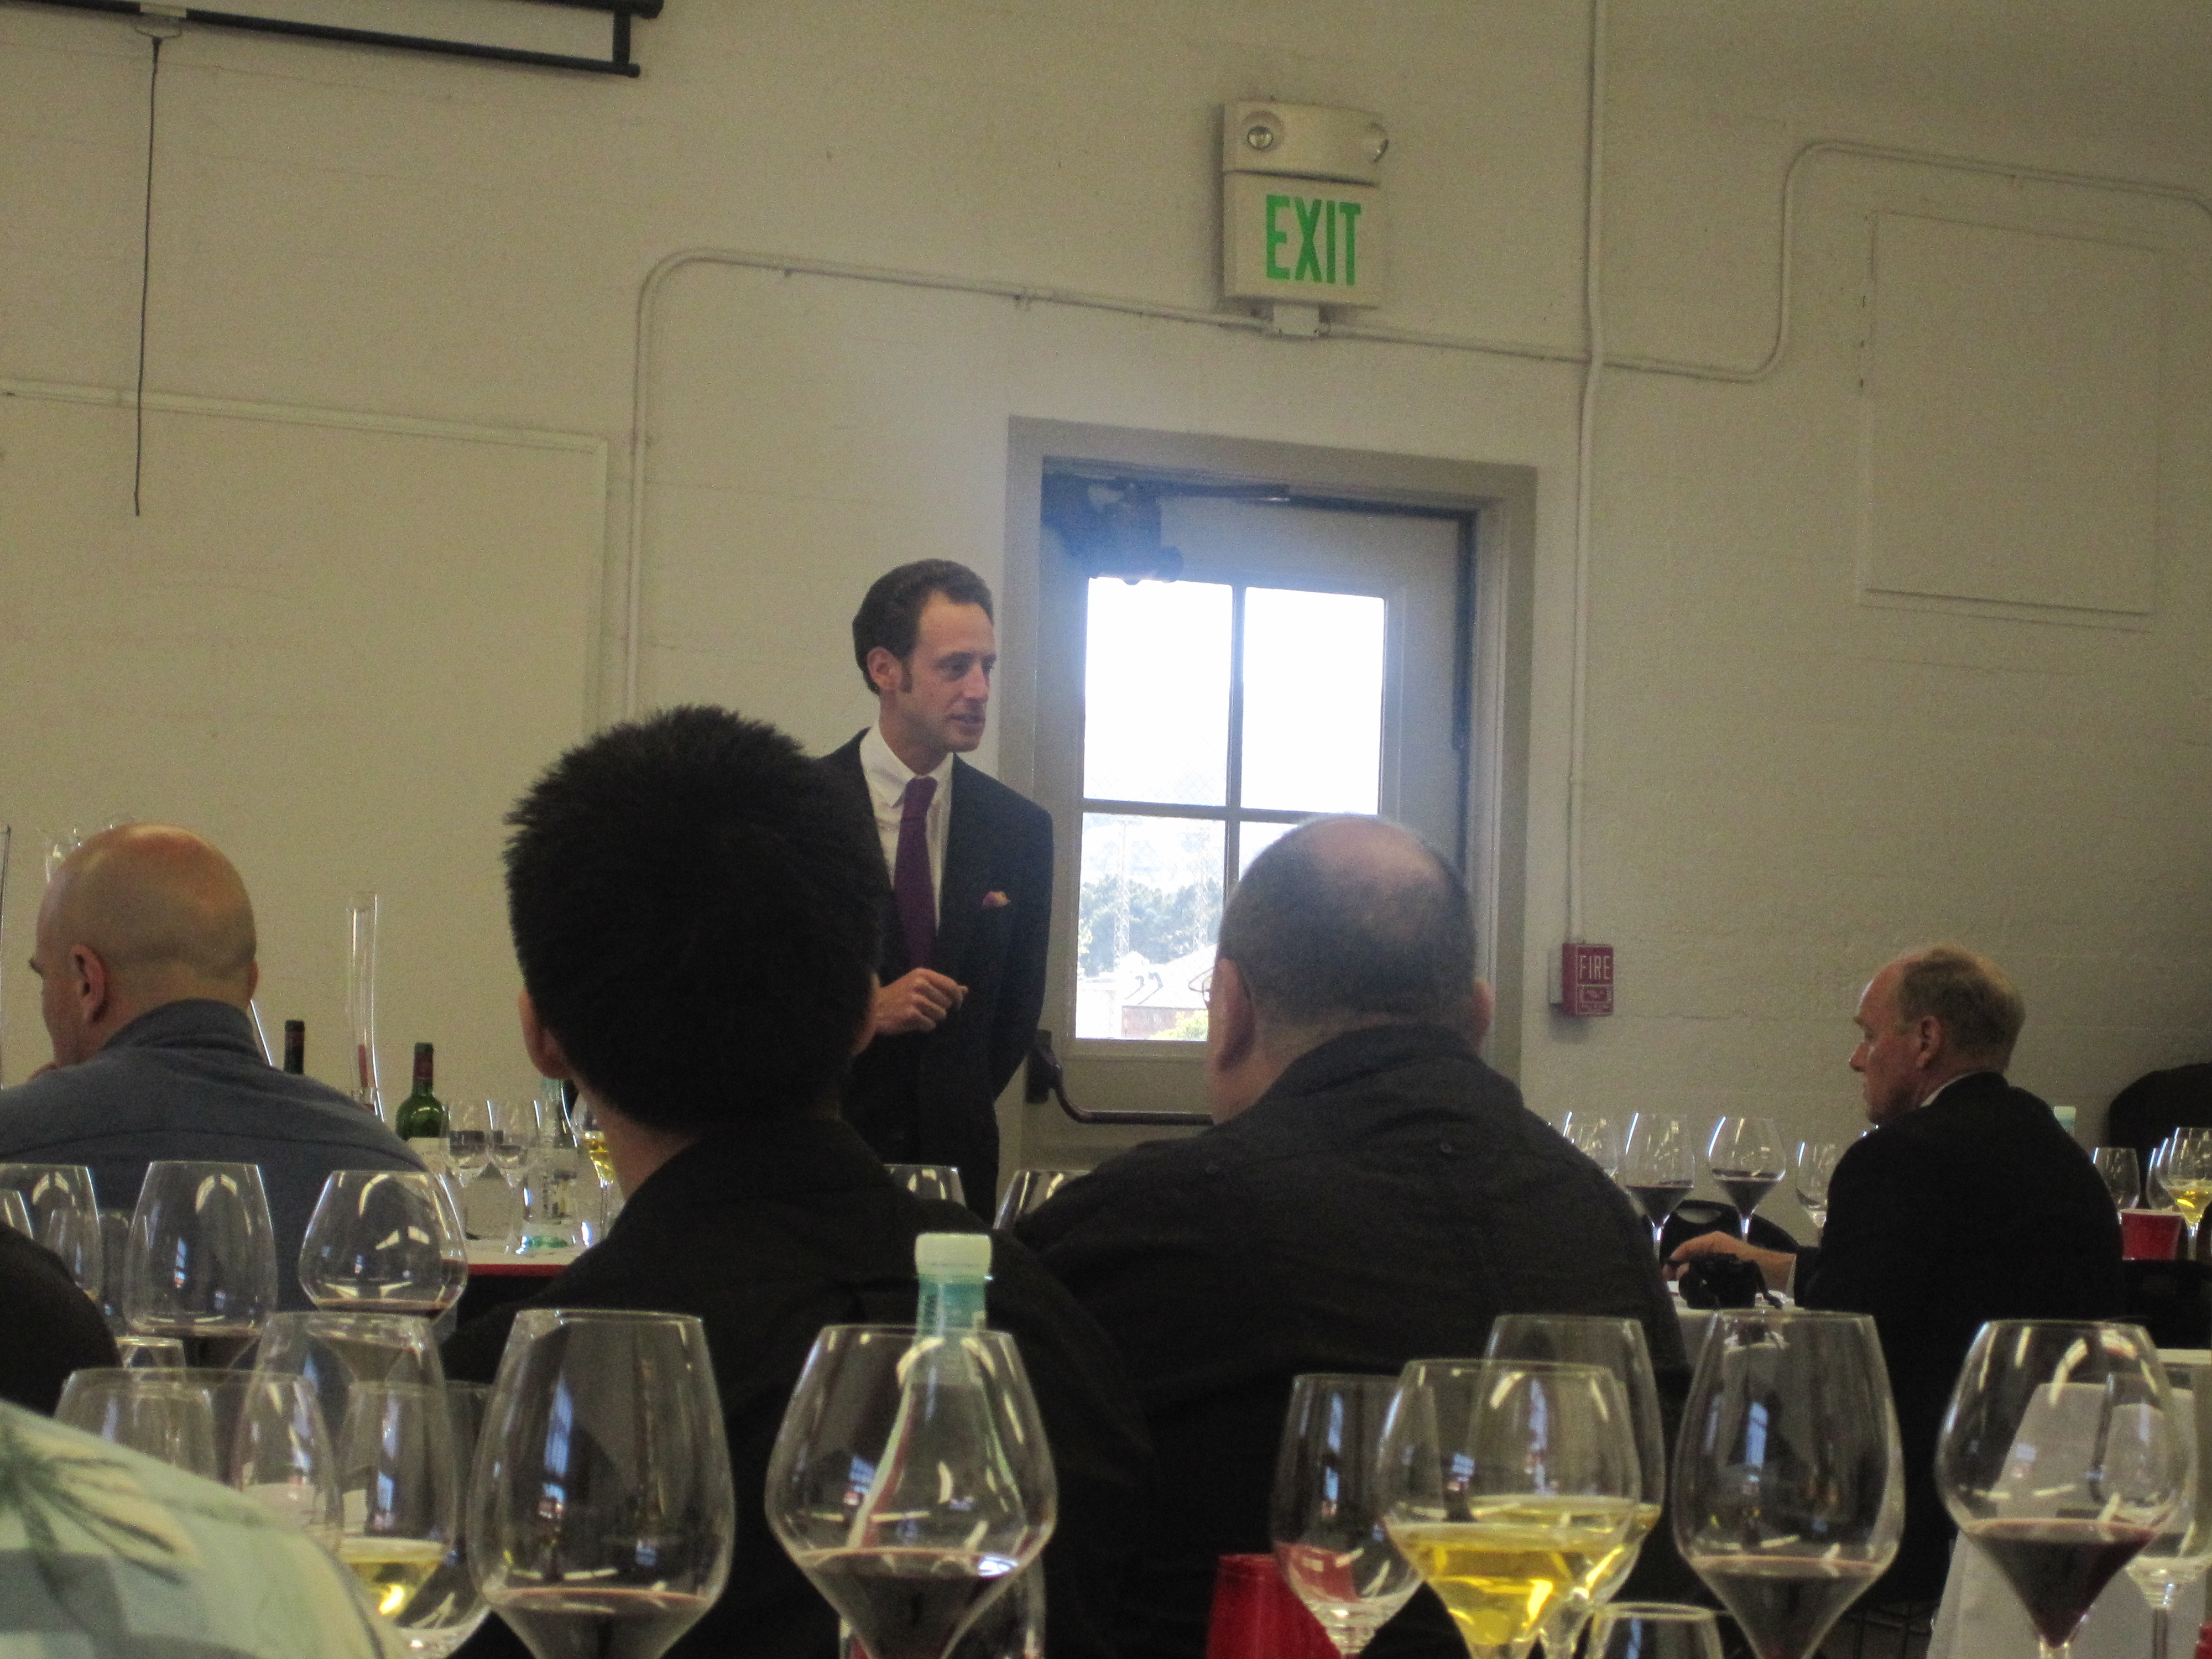 Maximilian Riedel led the discussion.